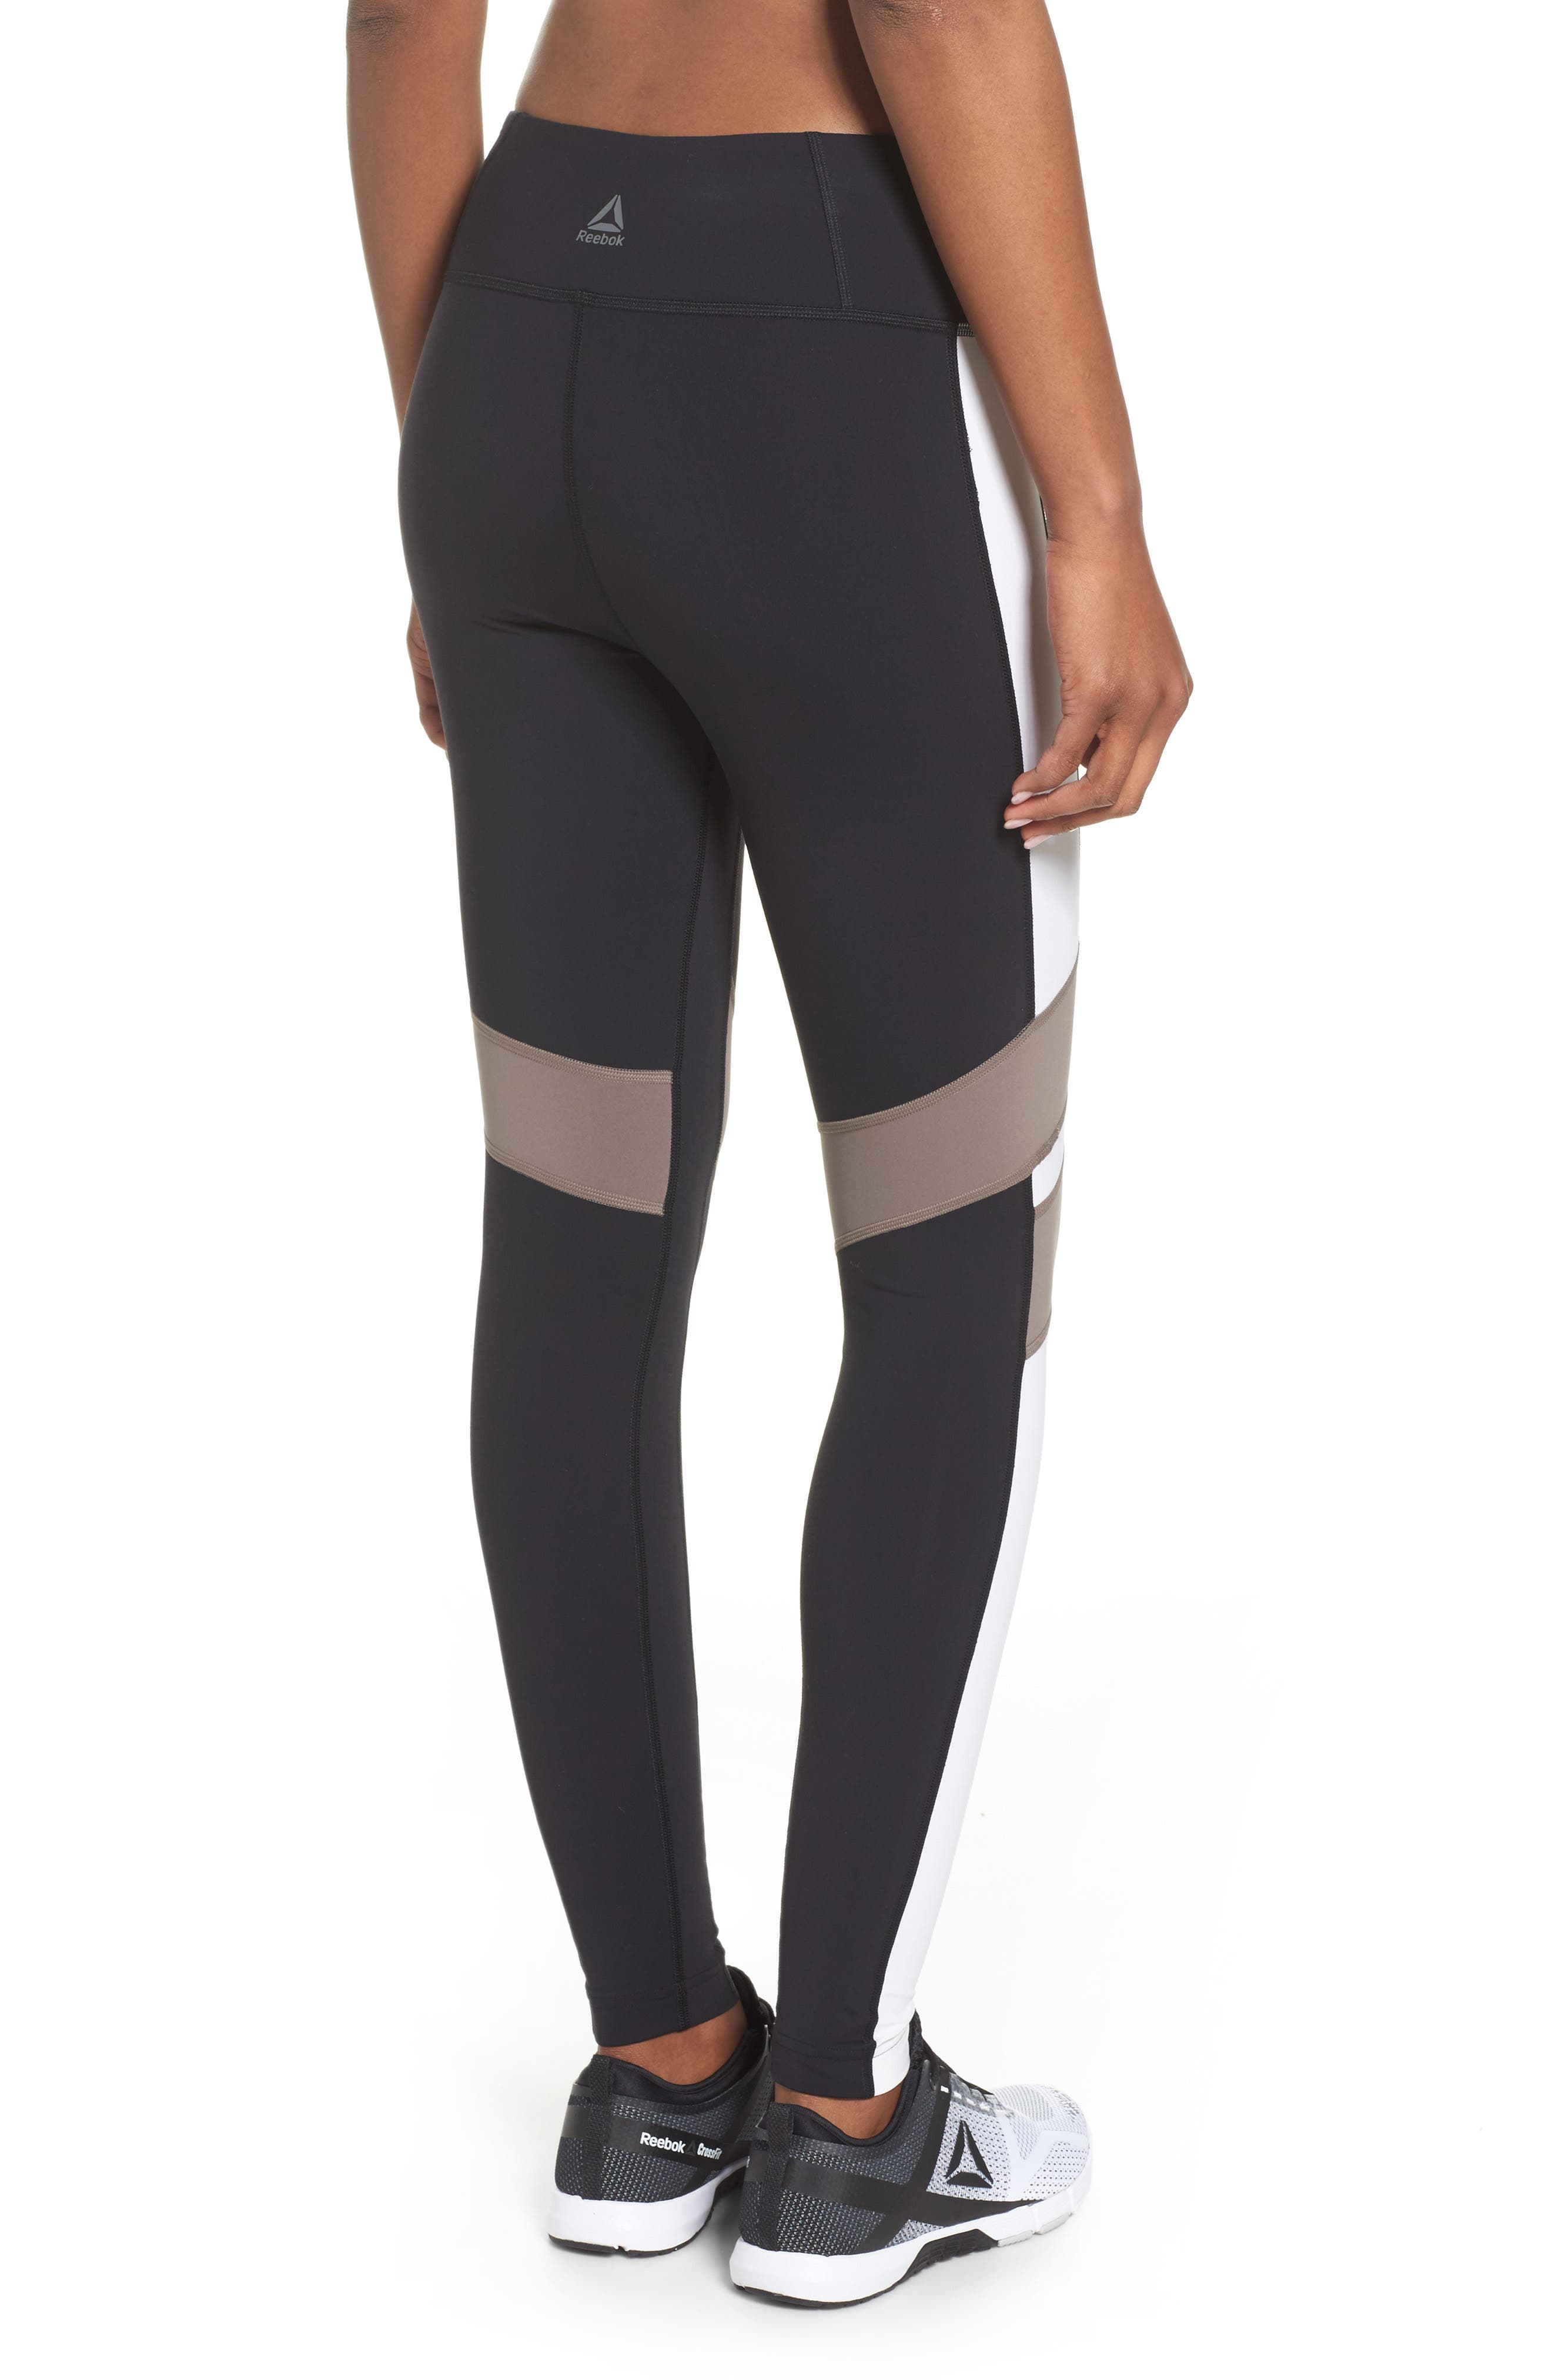 Reebox Lux Tights,                             Alternate thumbnail 2, color,                             005